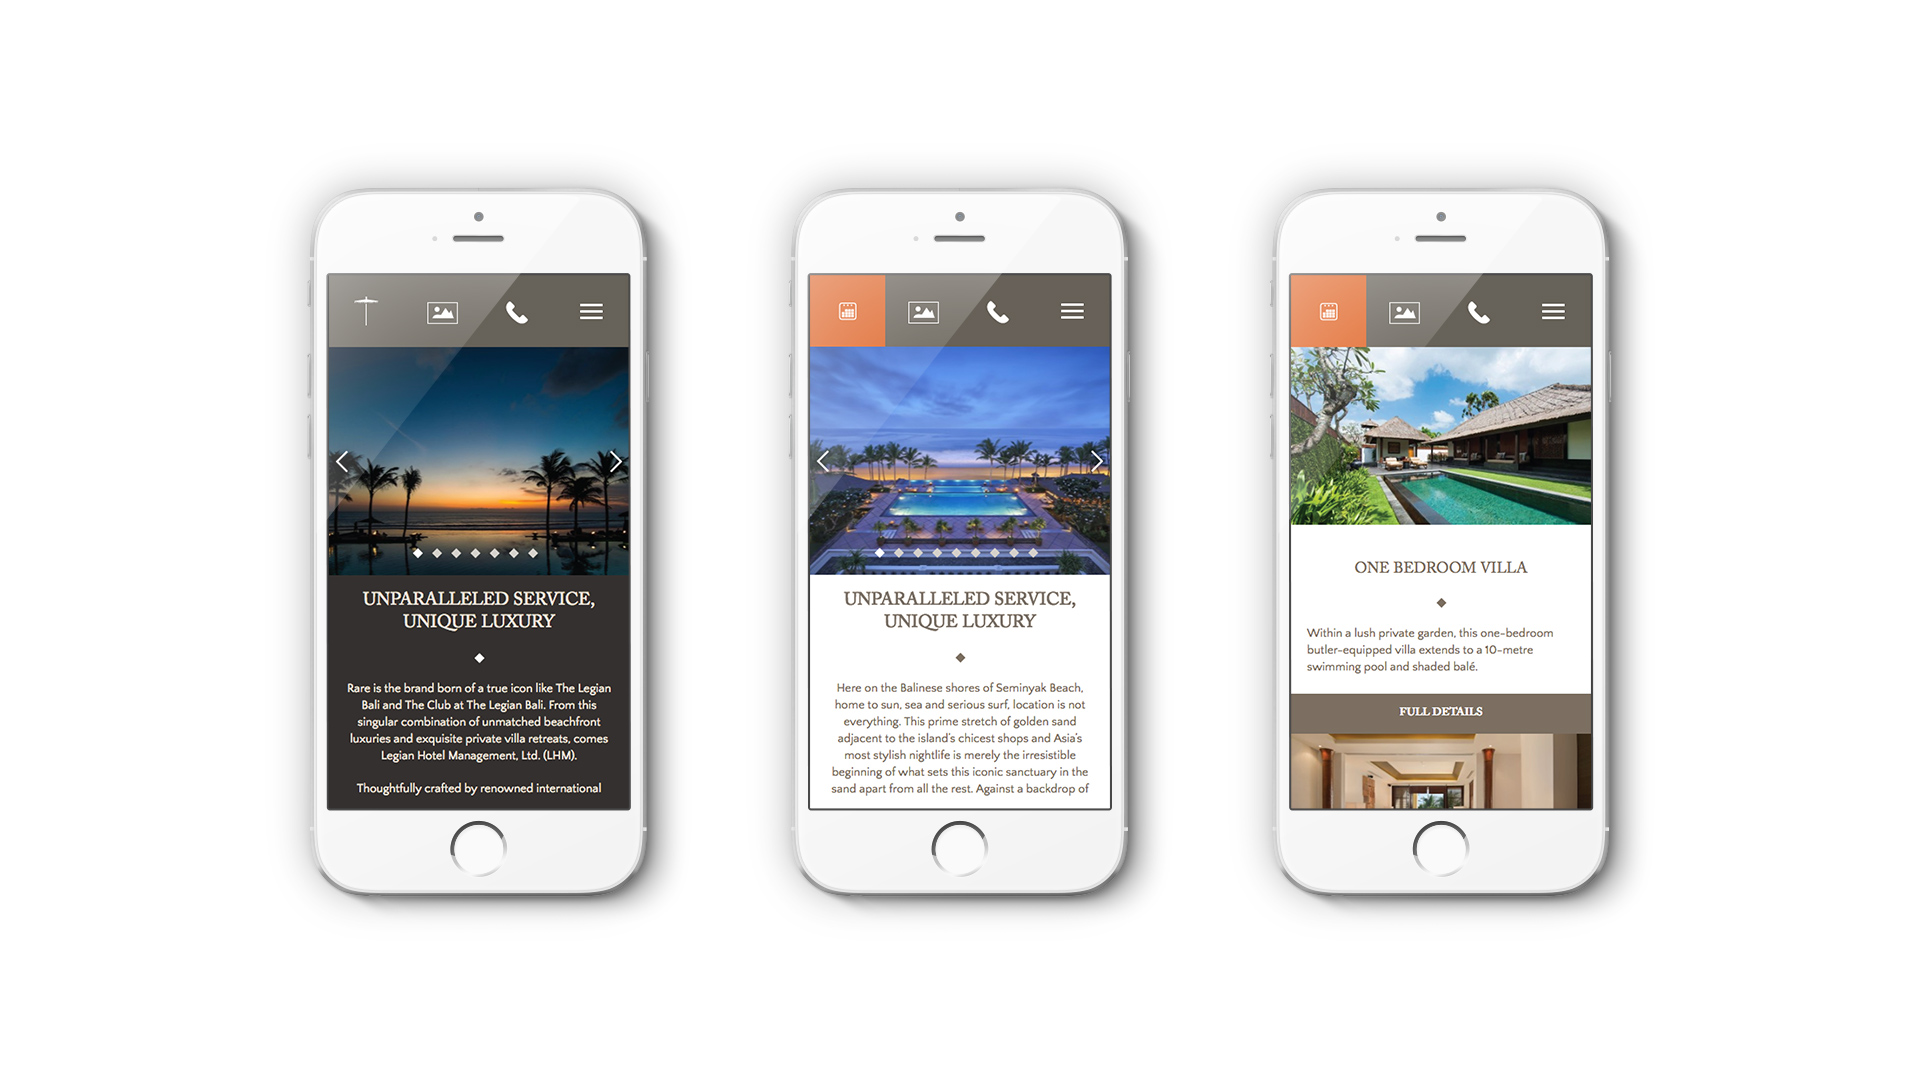 Luxury Hotel Marketing | Legian Hotel Management | Three iPhones Showing Mobile Design